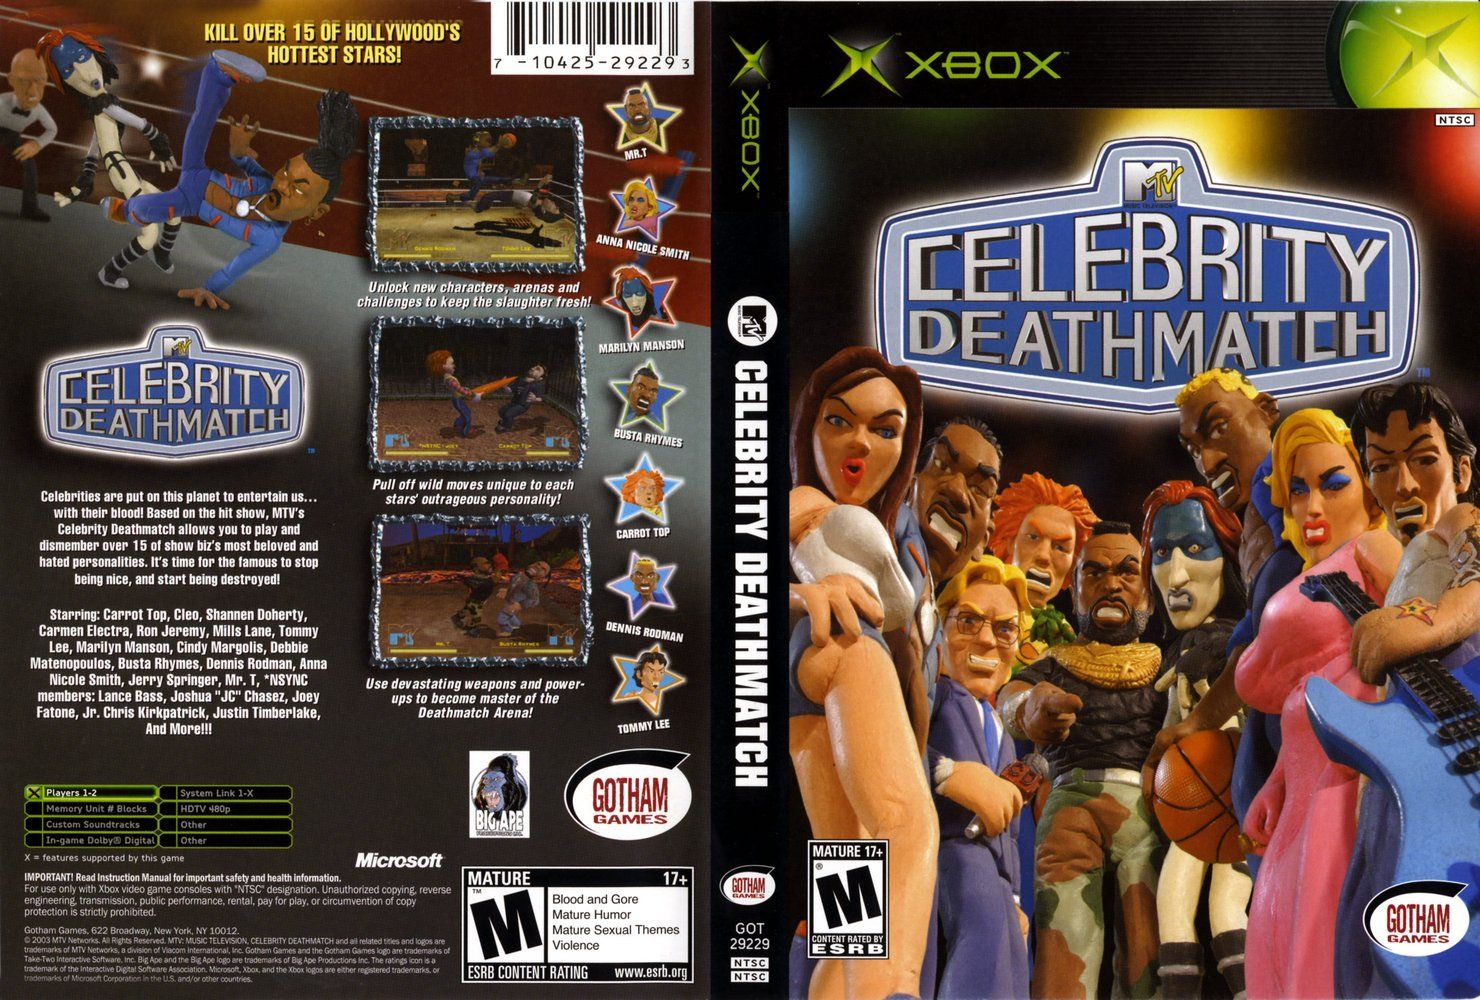 MTV's Celebrity Deathmatch for PC Reviews - Metacritic